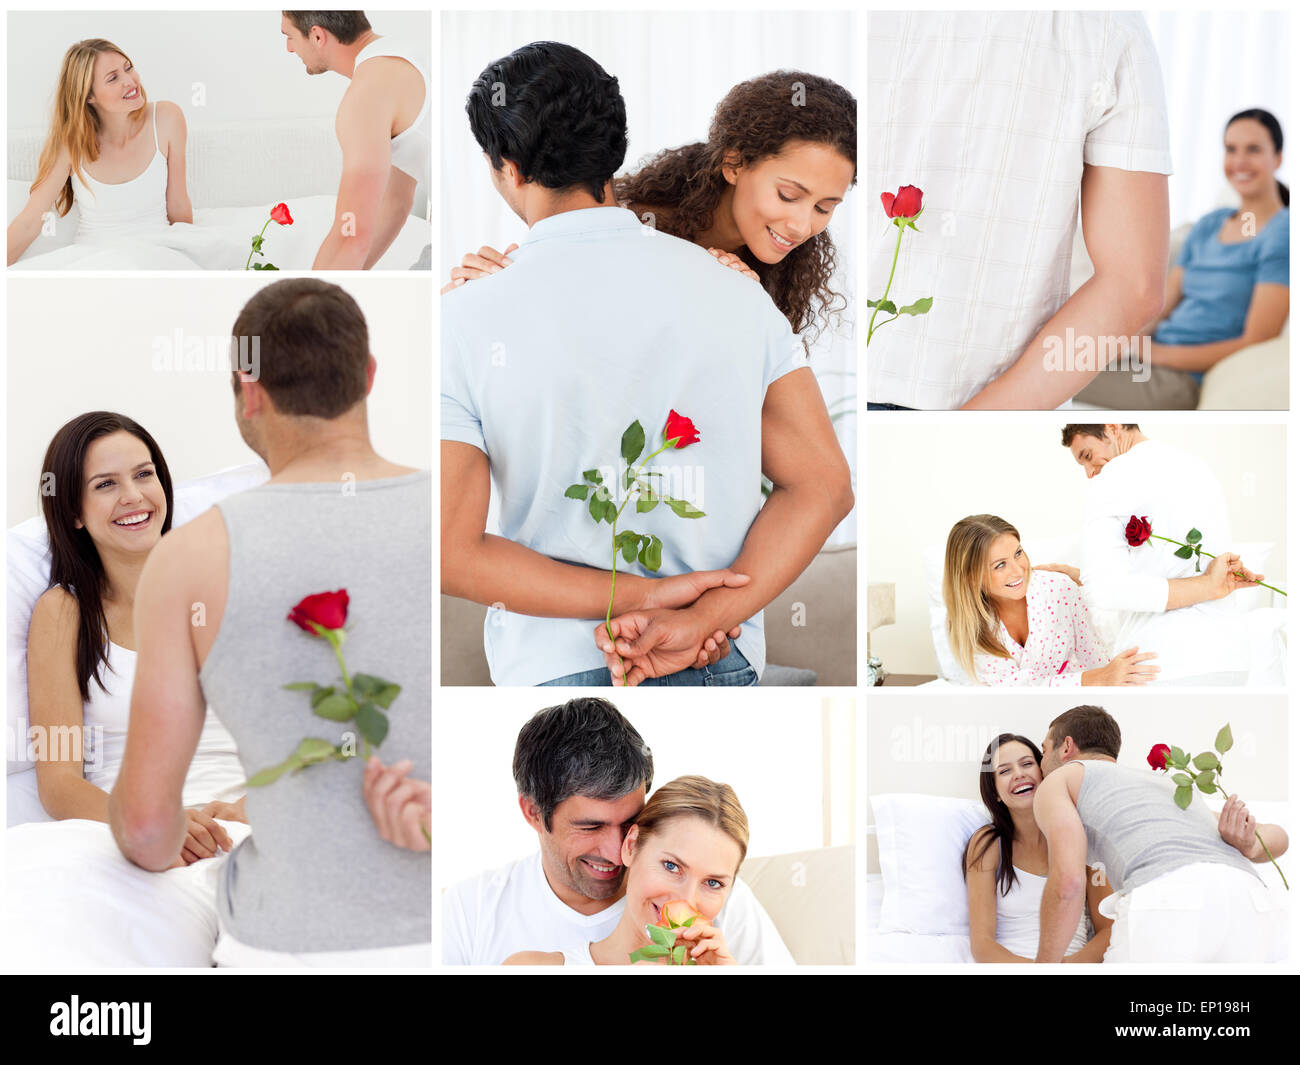 Collage Of Lovely Couples Enjoying The Moment Stock Photo 82393153